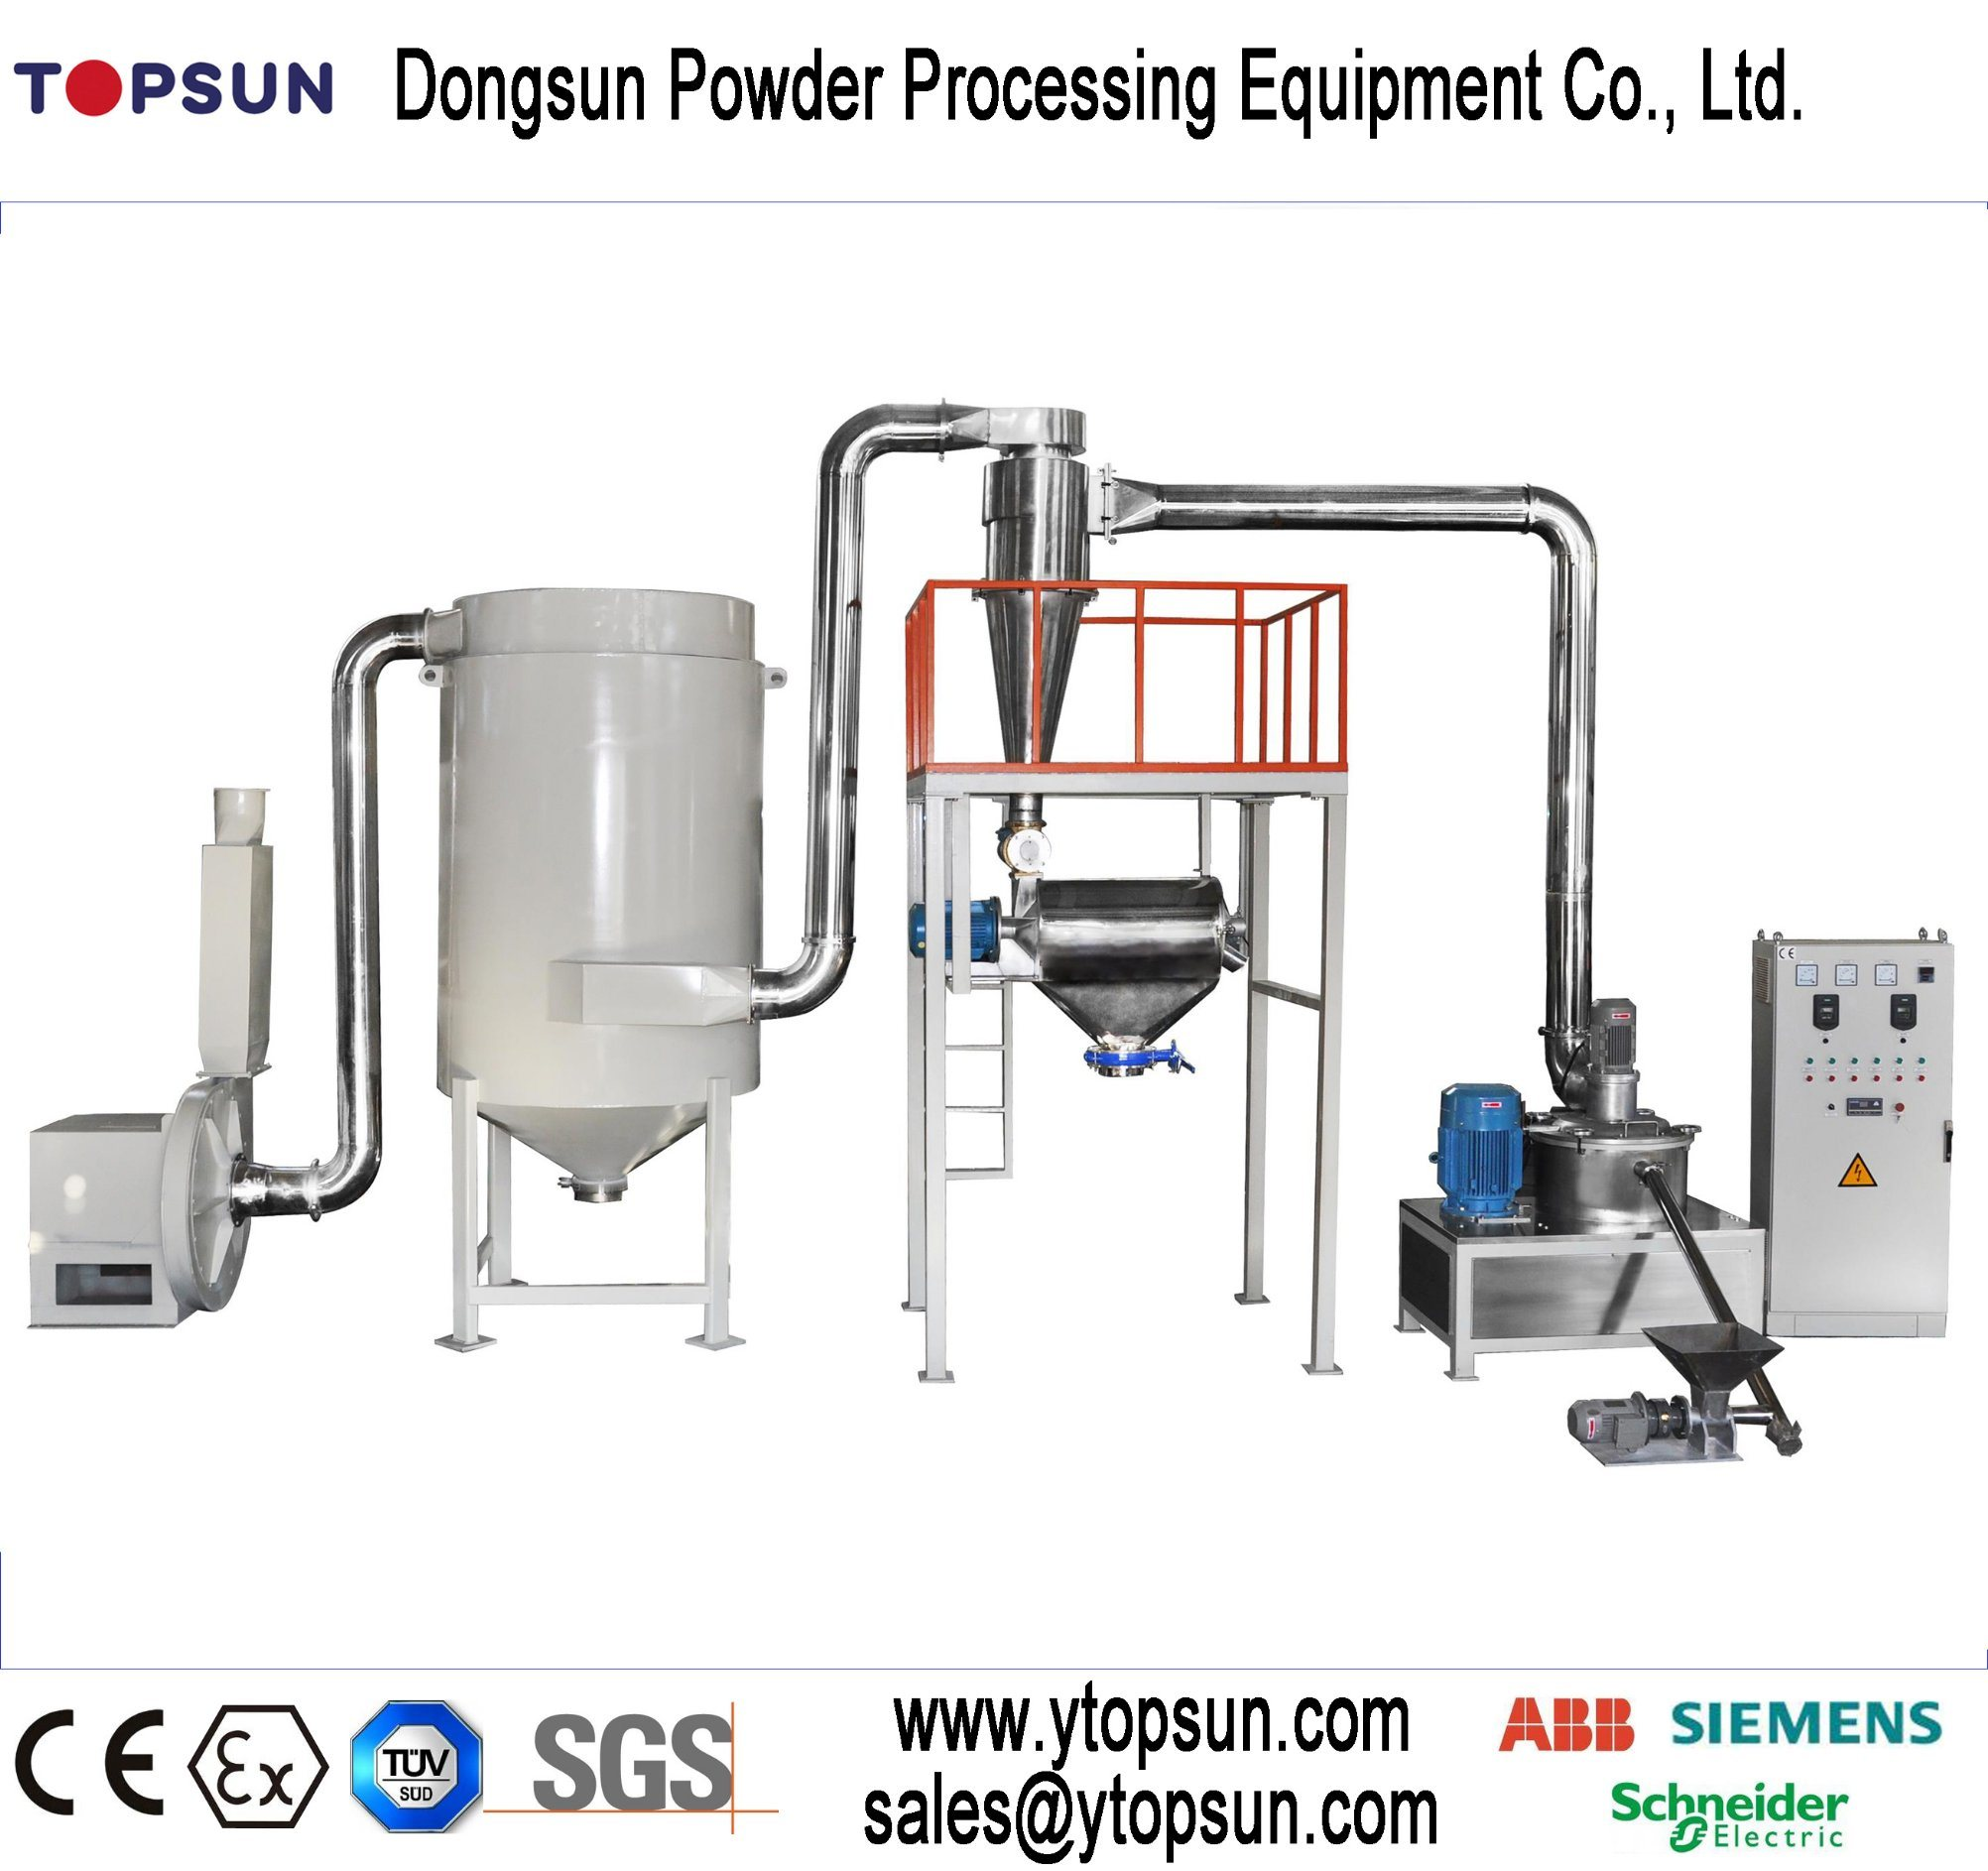 Powder Coating/Paint Producing/Manufacturing/Production/Making Machinery